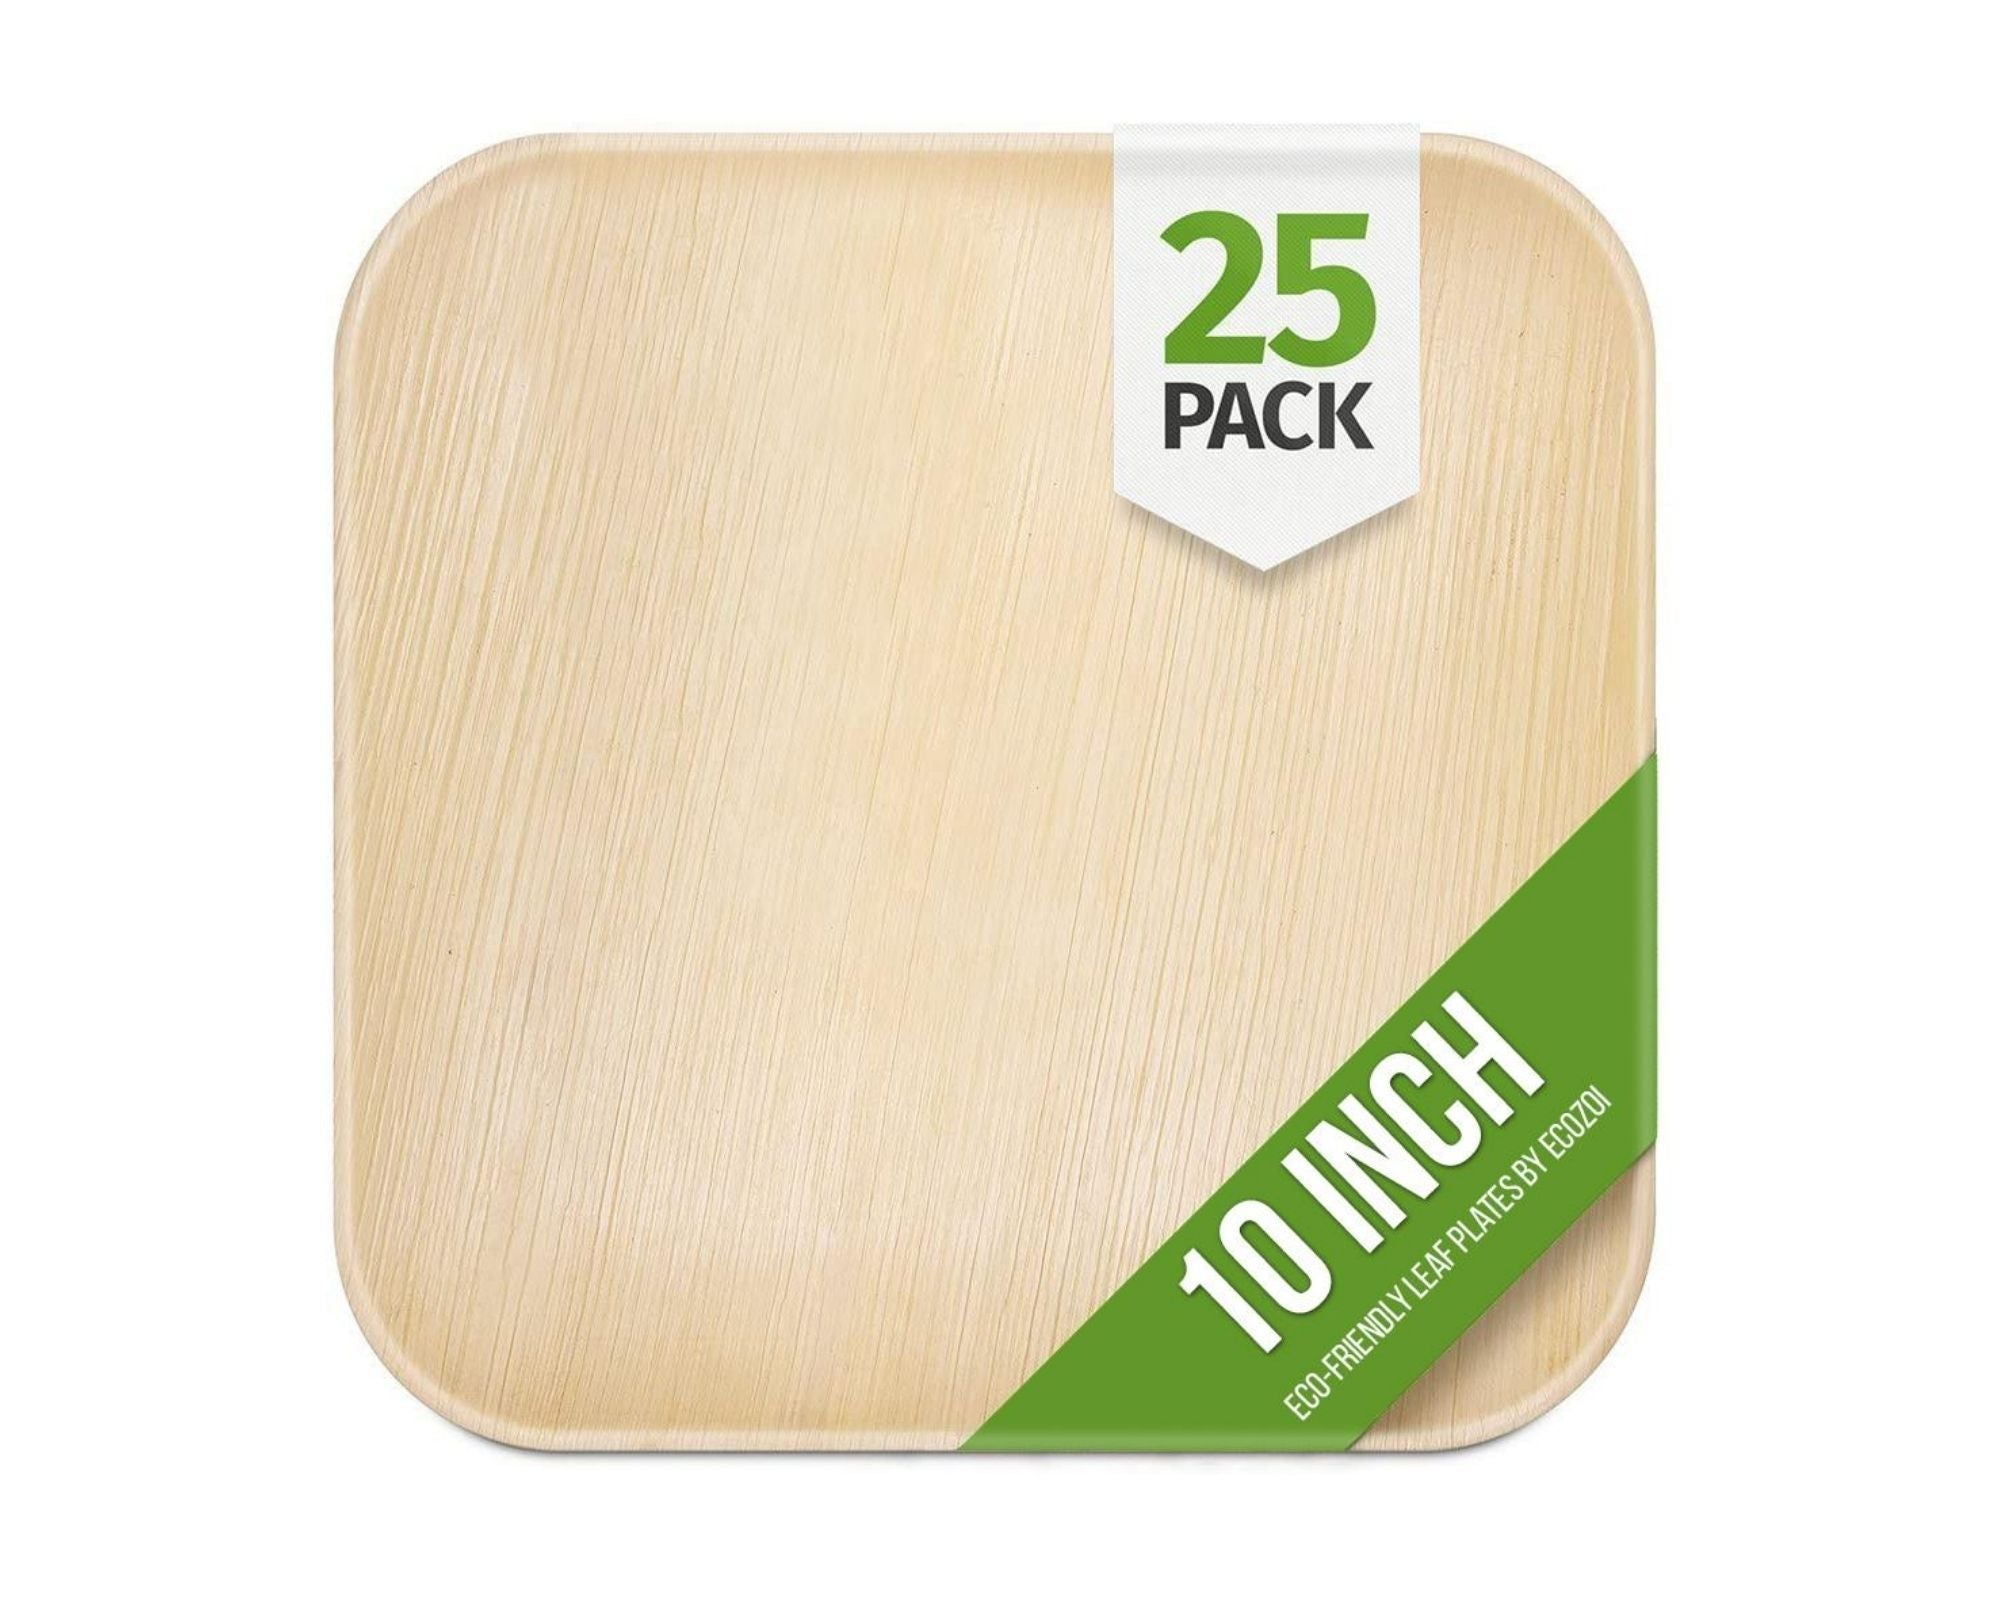 Disposable Square Palm Leaf Plates - 25 Pack